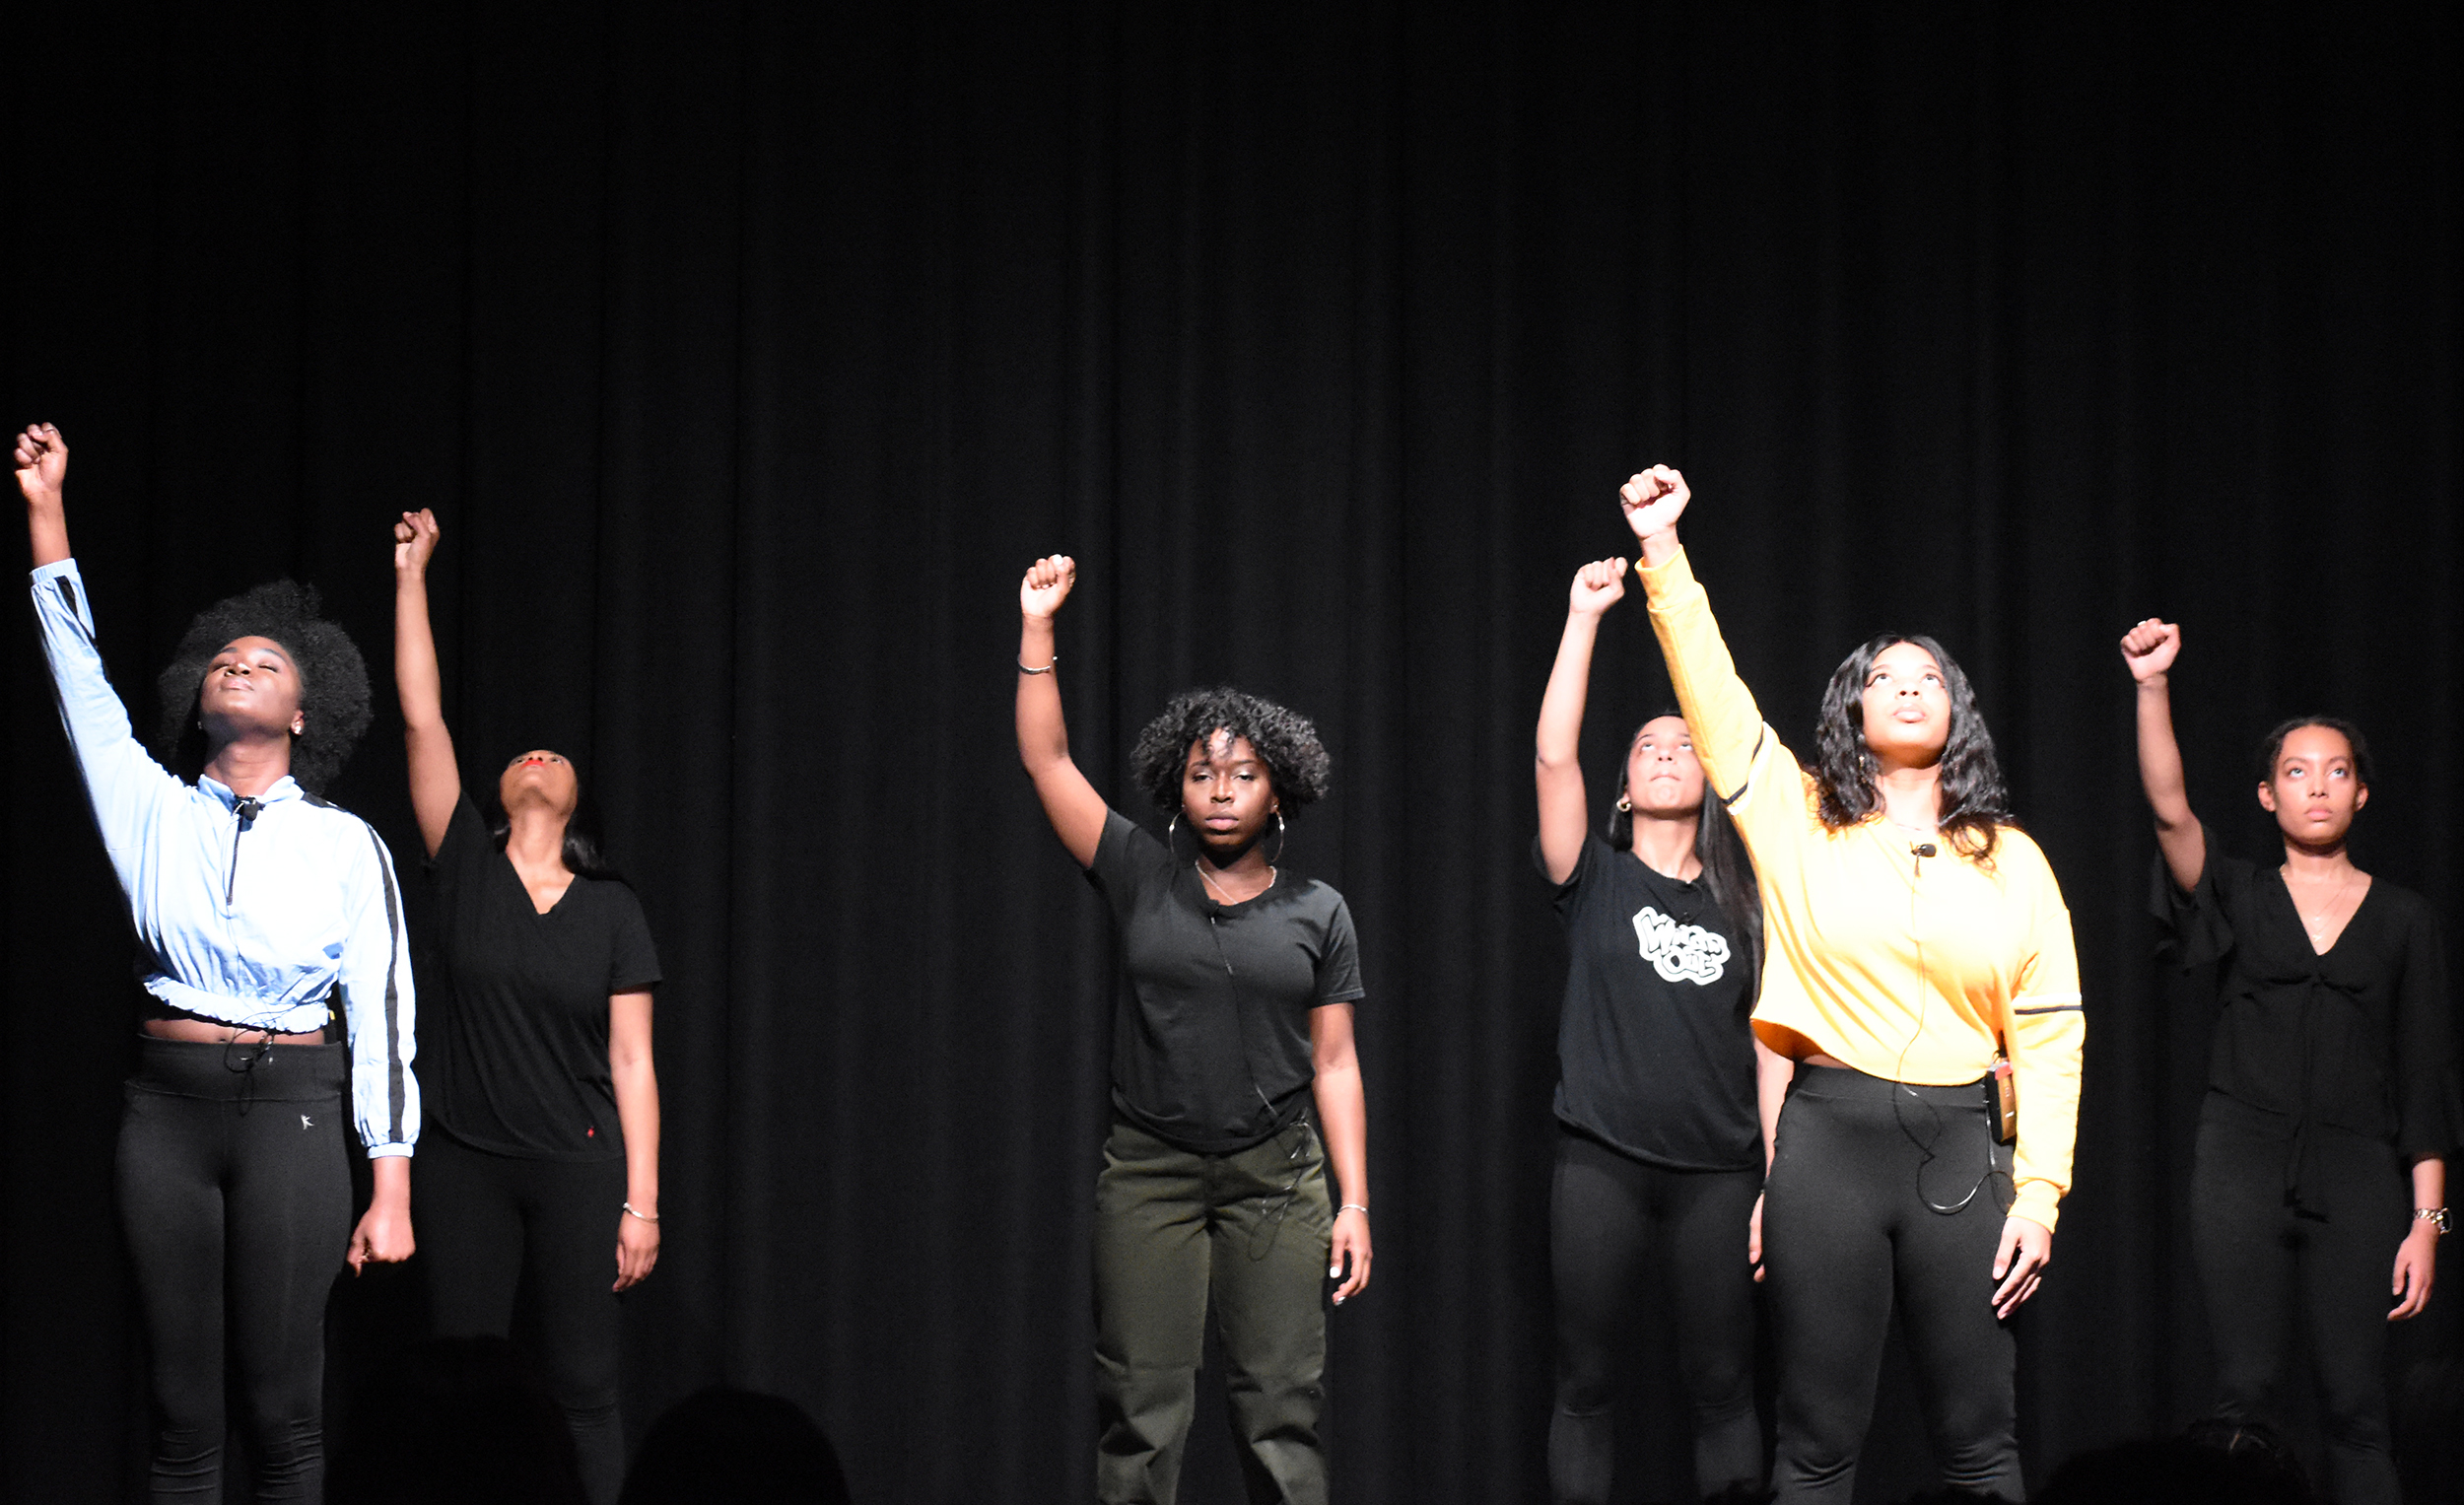 """Black Student Union hosted their annual Soul Food Dinner, """"Black Girl Magic,"""" on Saturday Feb. 23. The event was characterized by traditional soul food, dances and various skits that addressed struggles that black women face in society (Josie Kwan/Assoc. Photo Editor)."""